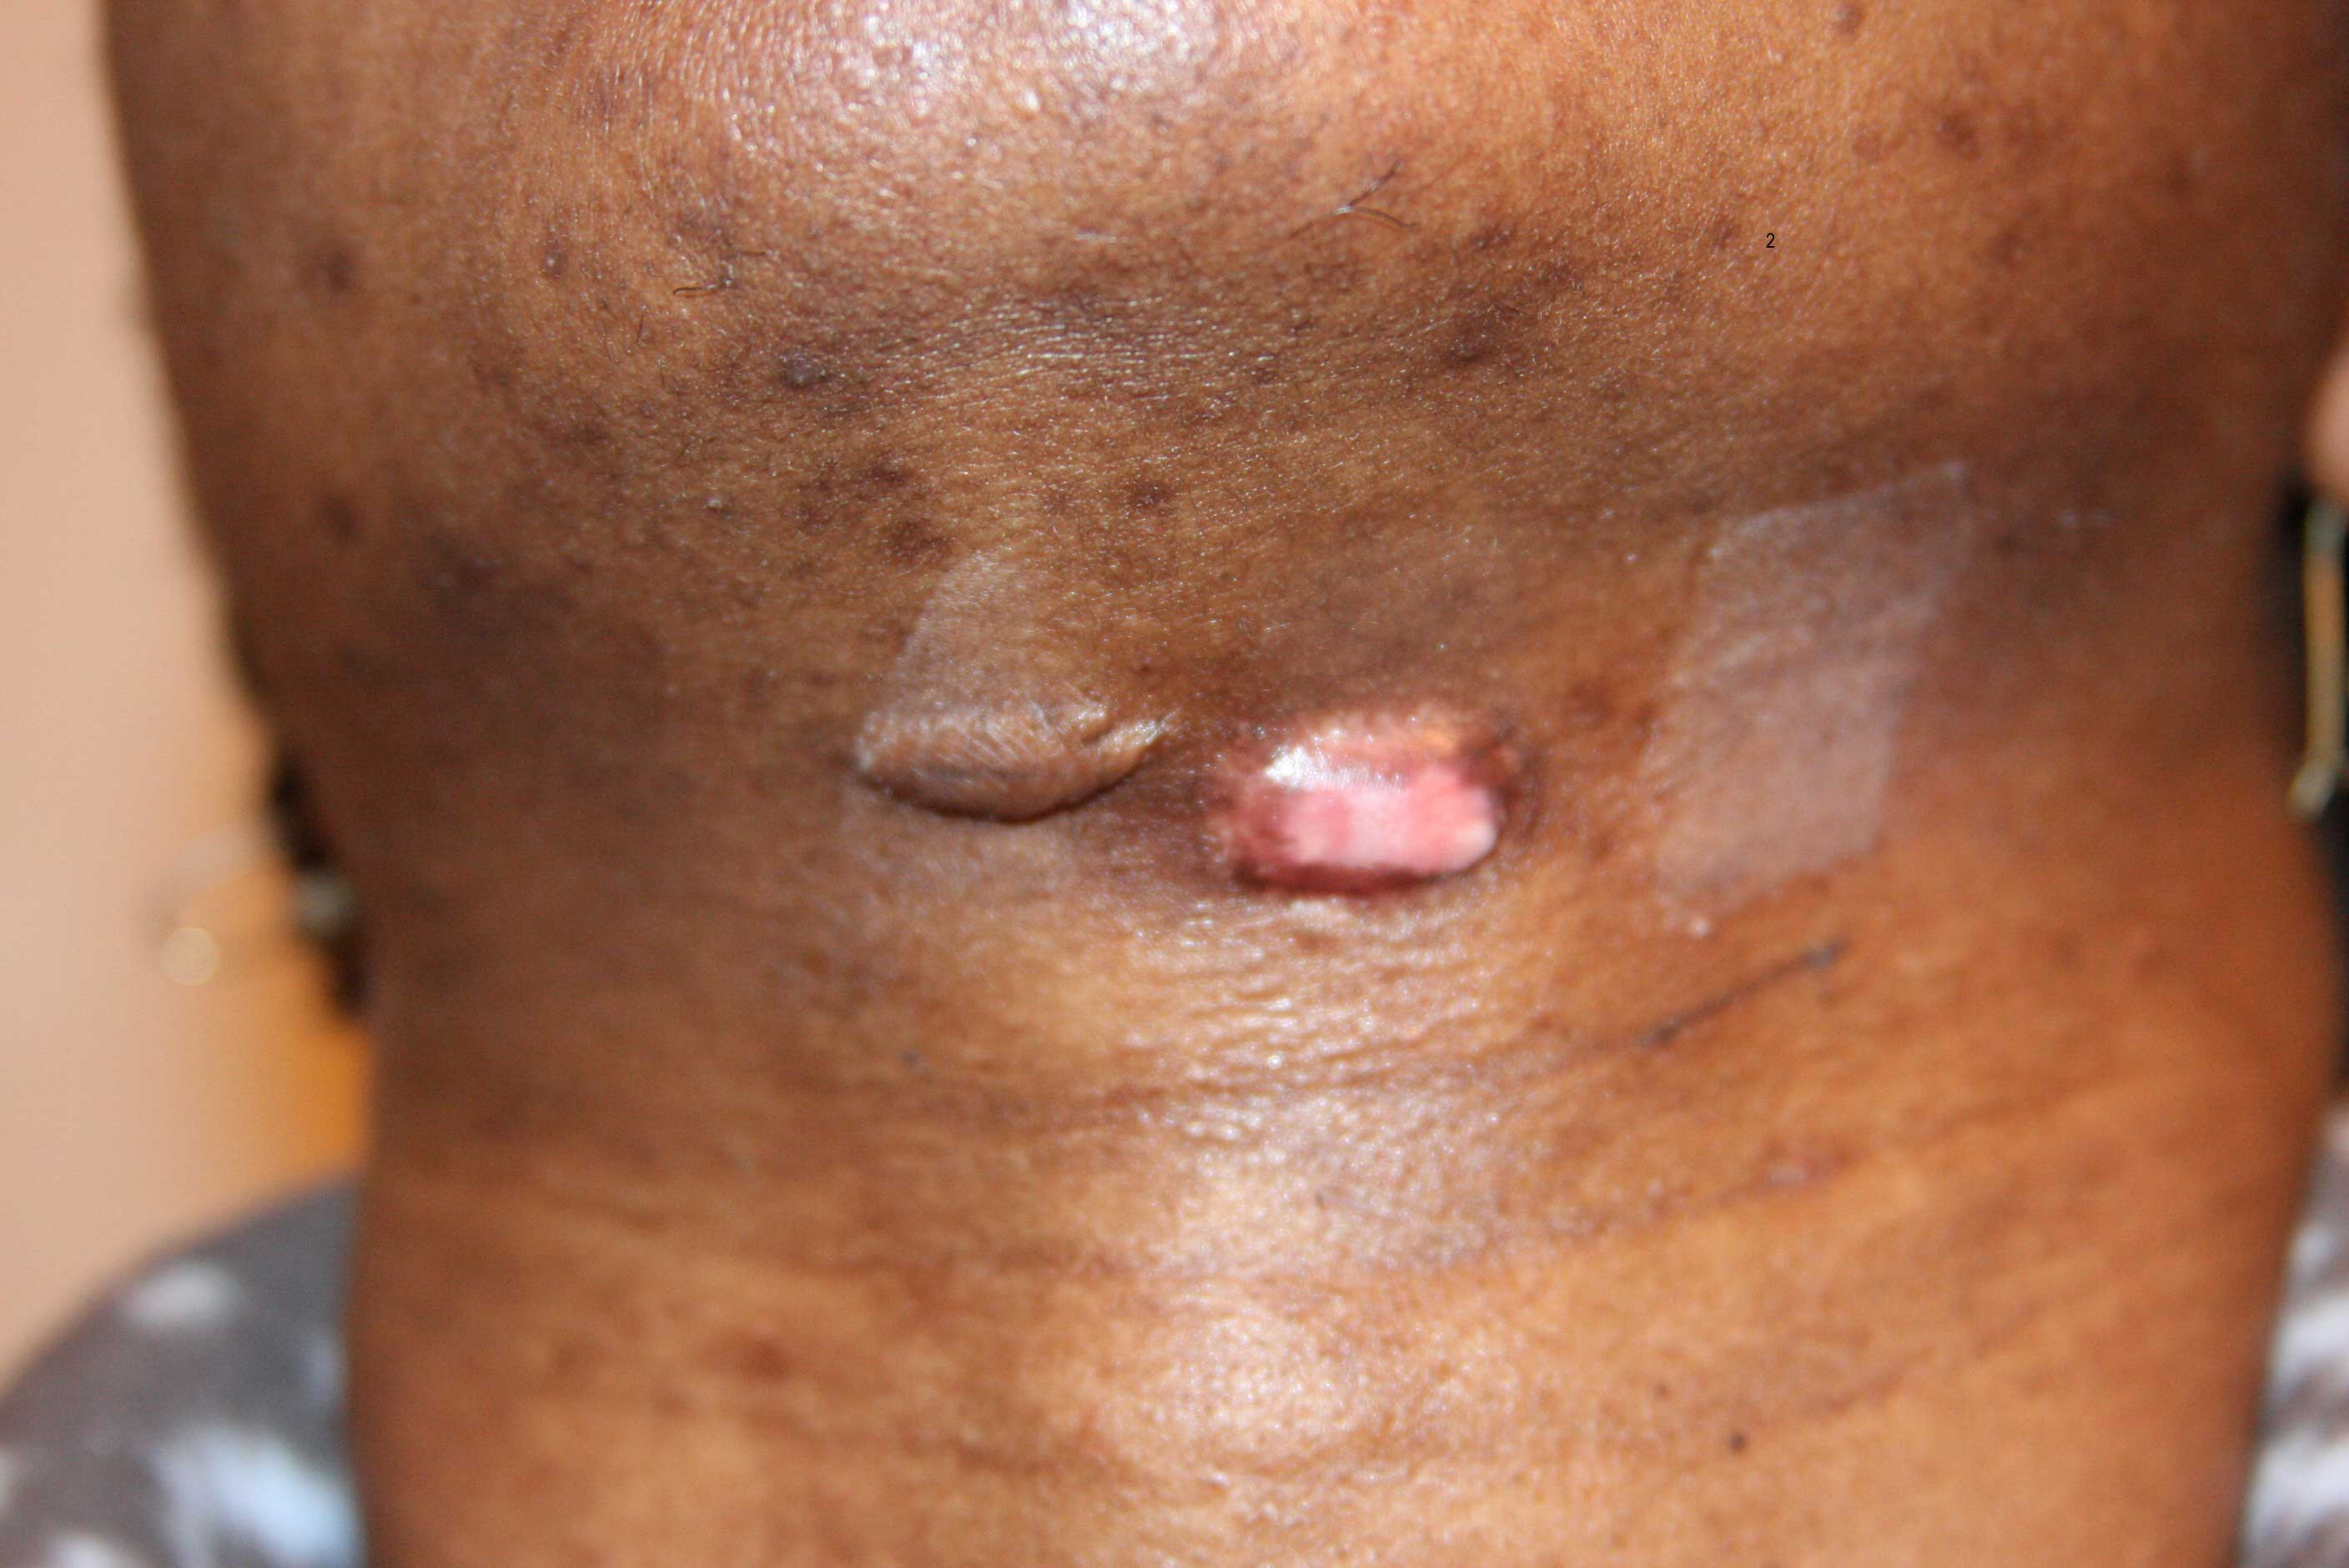 steroid injection causing rash